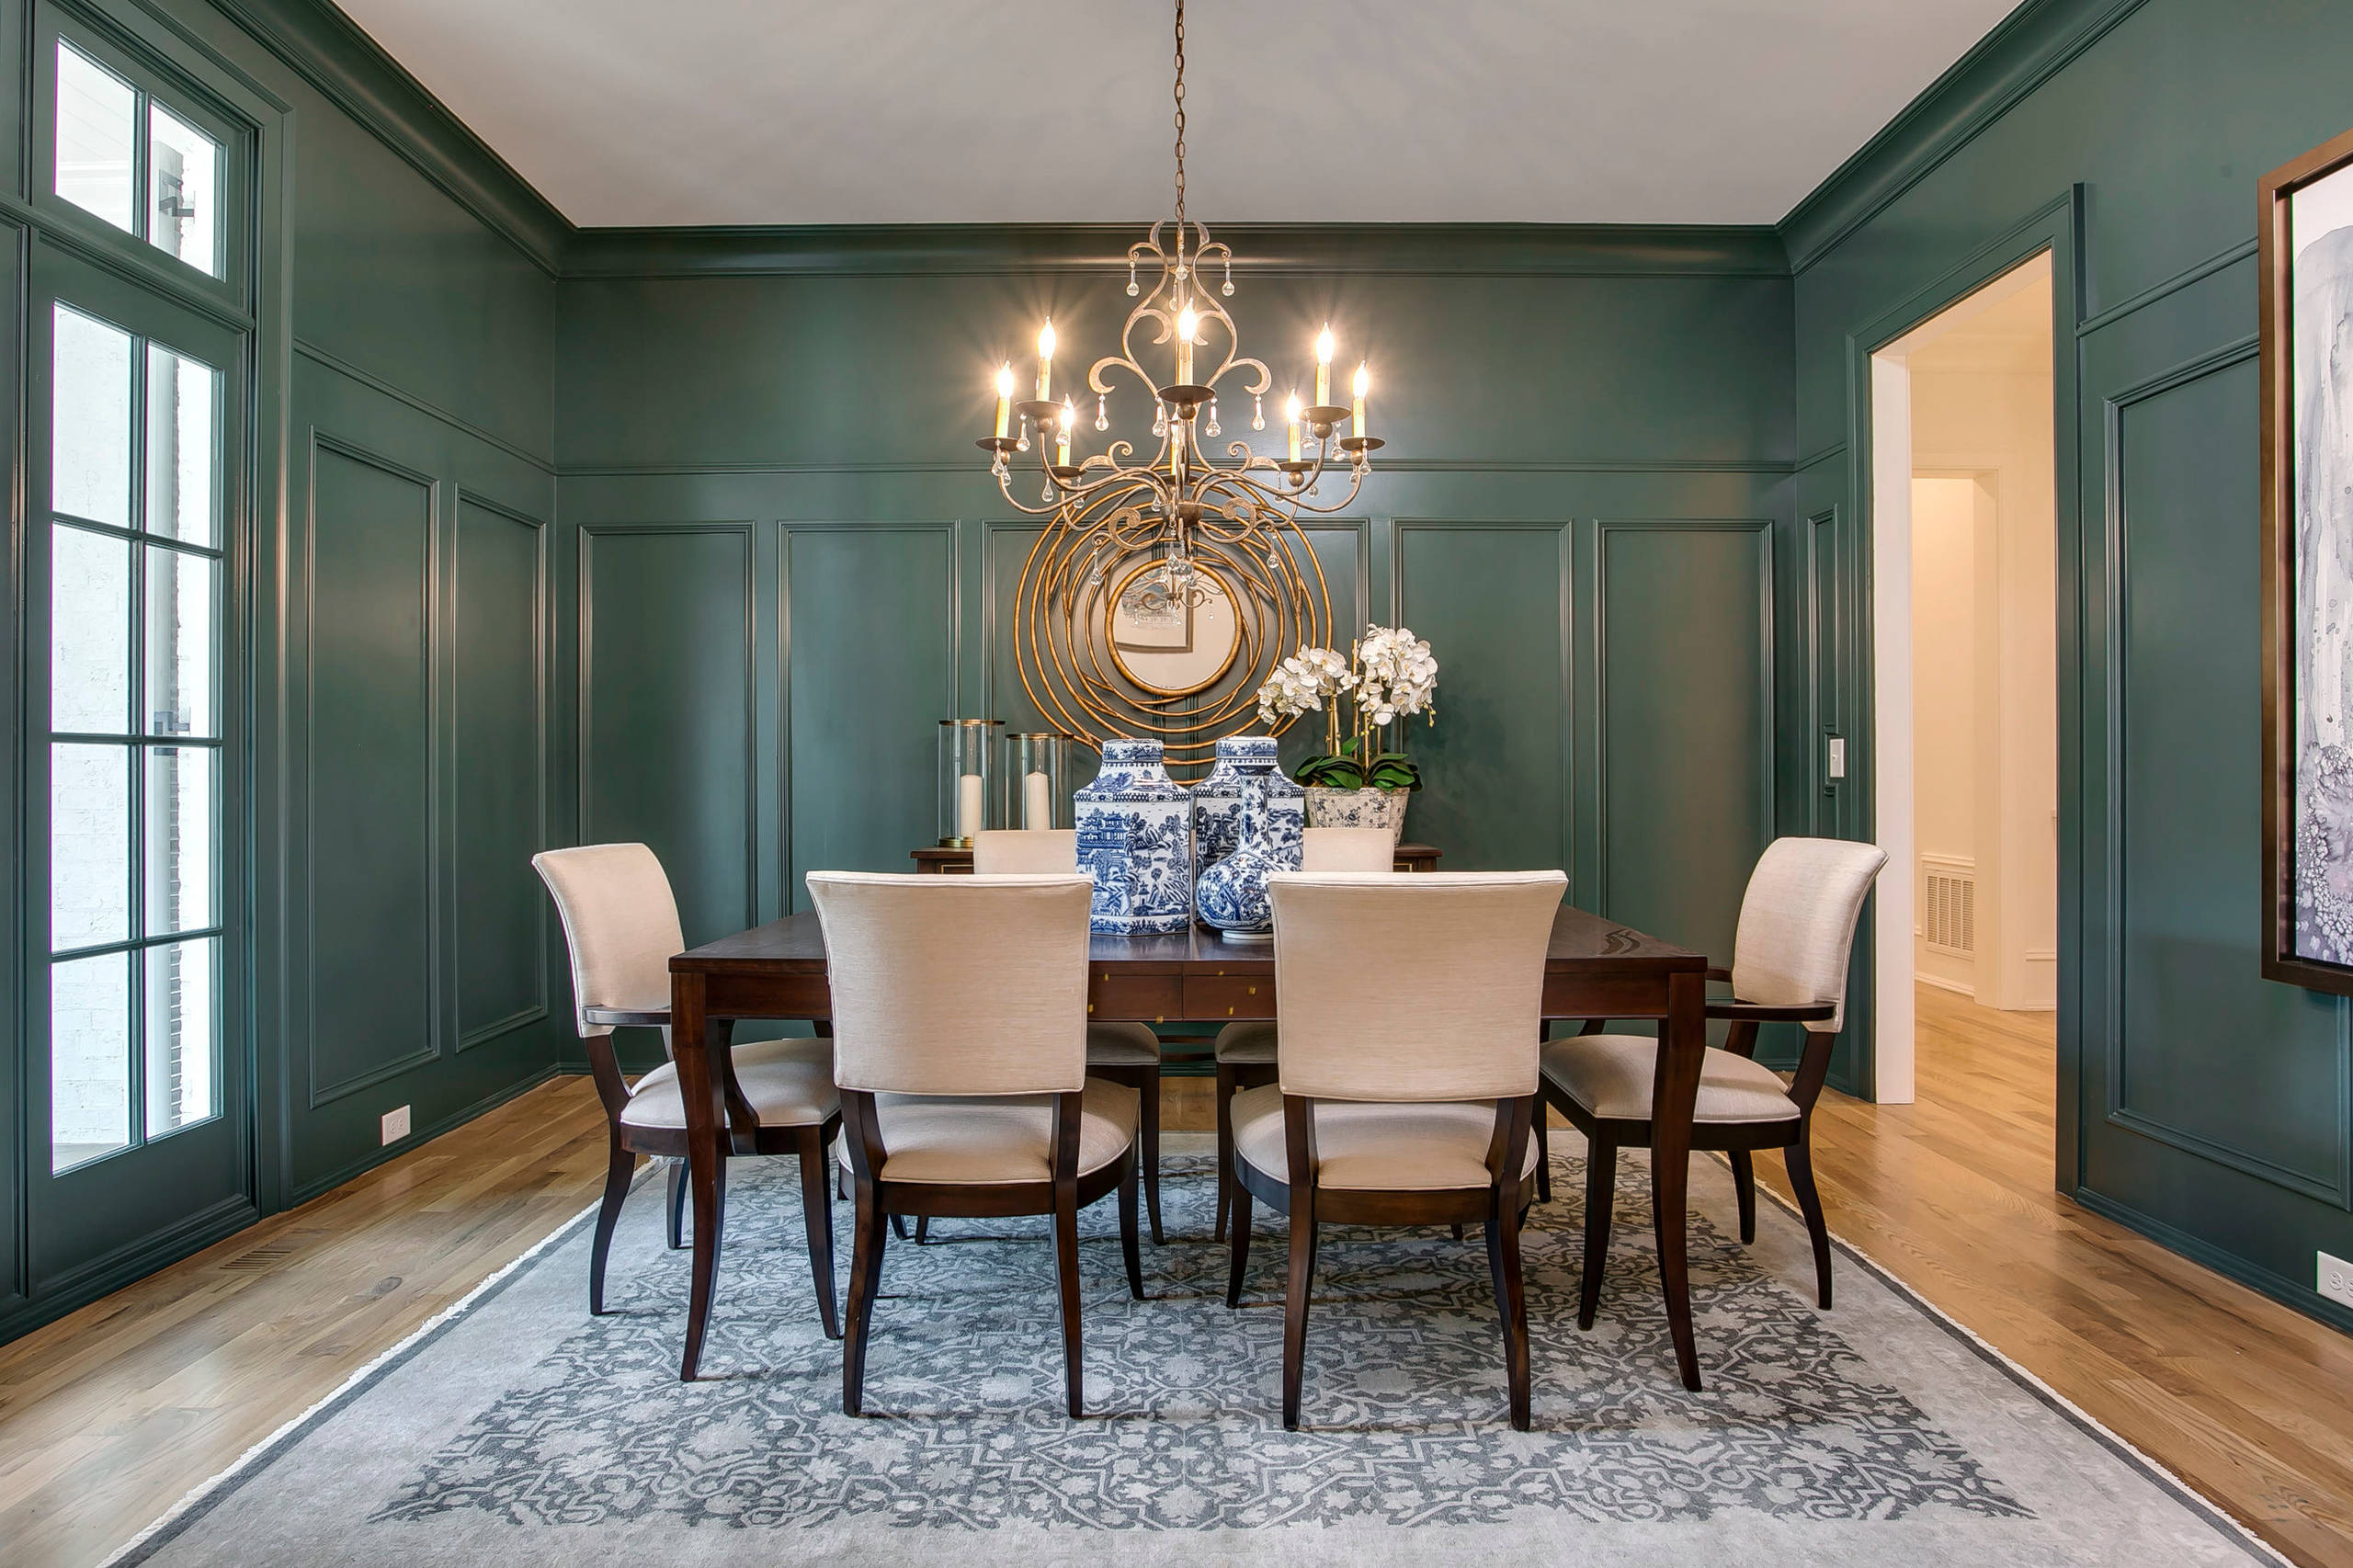 75 Beautiful Traditional Turquoise Dining Room Pictures Ideas February 2021 Houzz